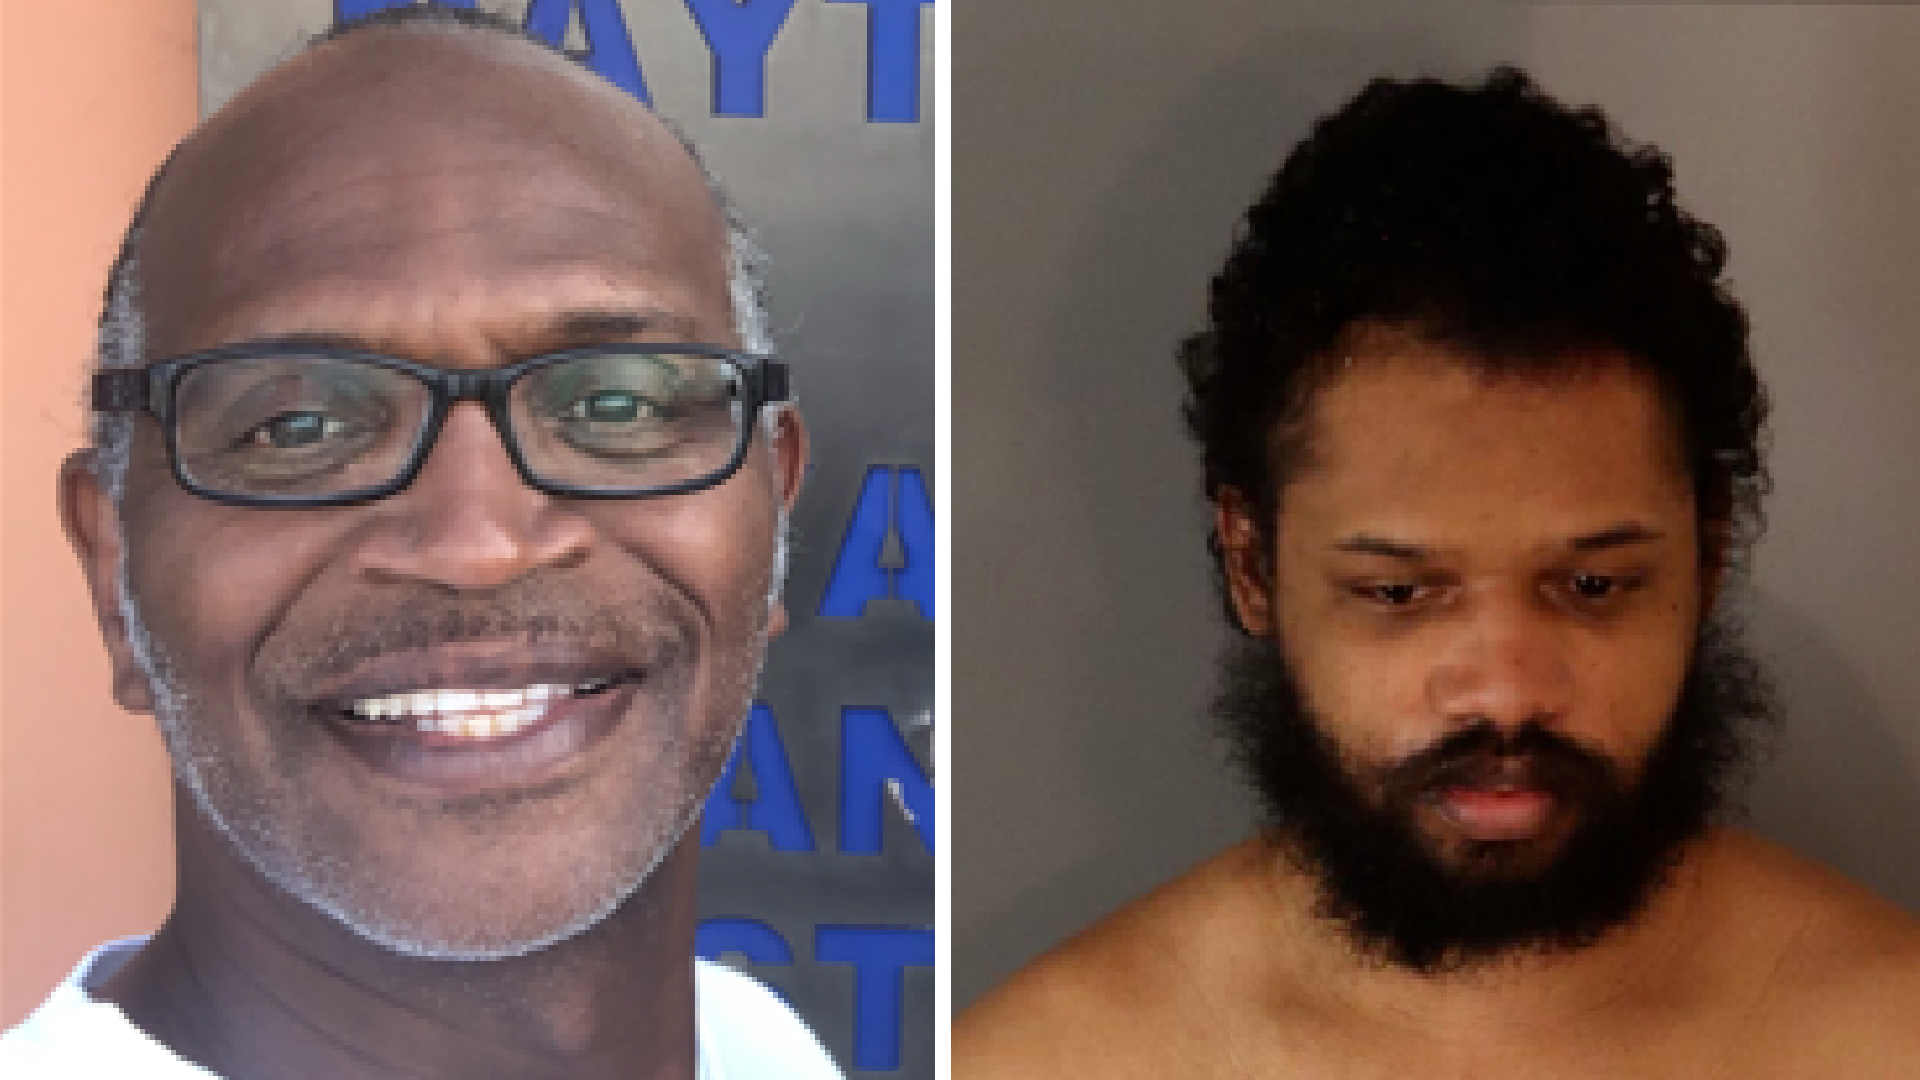 Grant Leggette Sr. and the man arrested on suspicion of killing him, Richard Kevin Baldwin III, are seen in undated photos released by the Riverside Police Department.